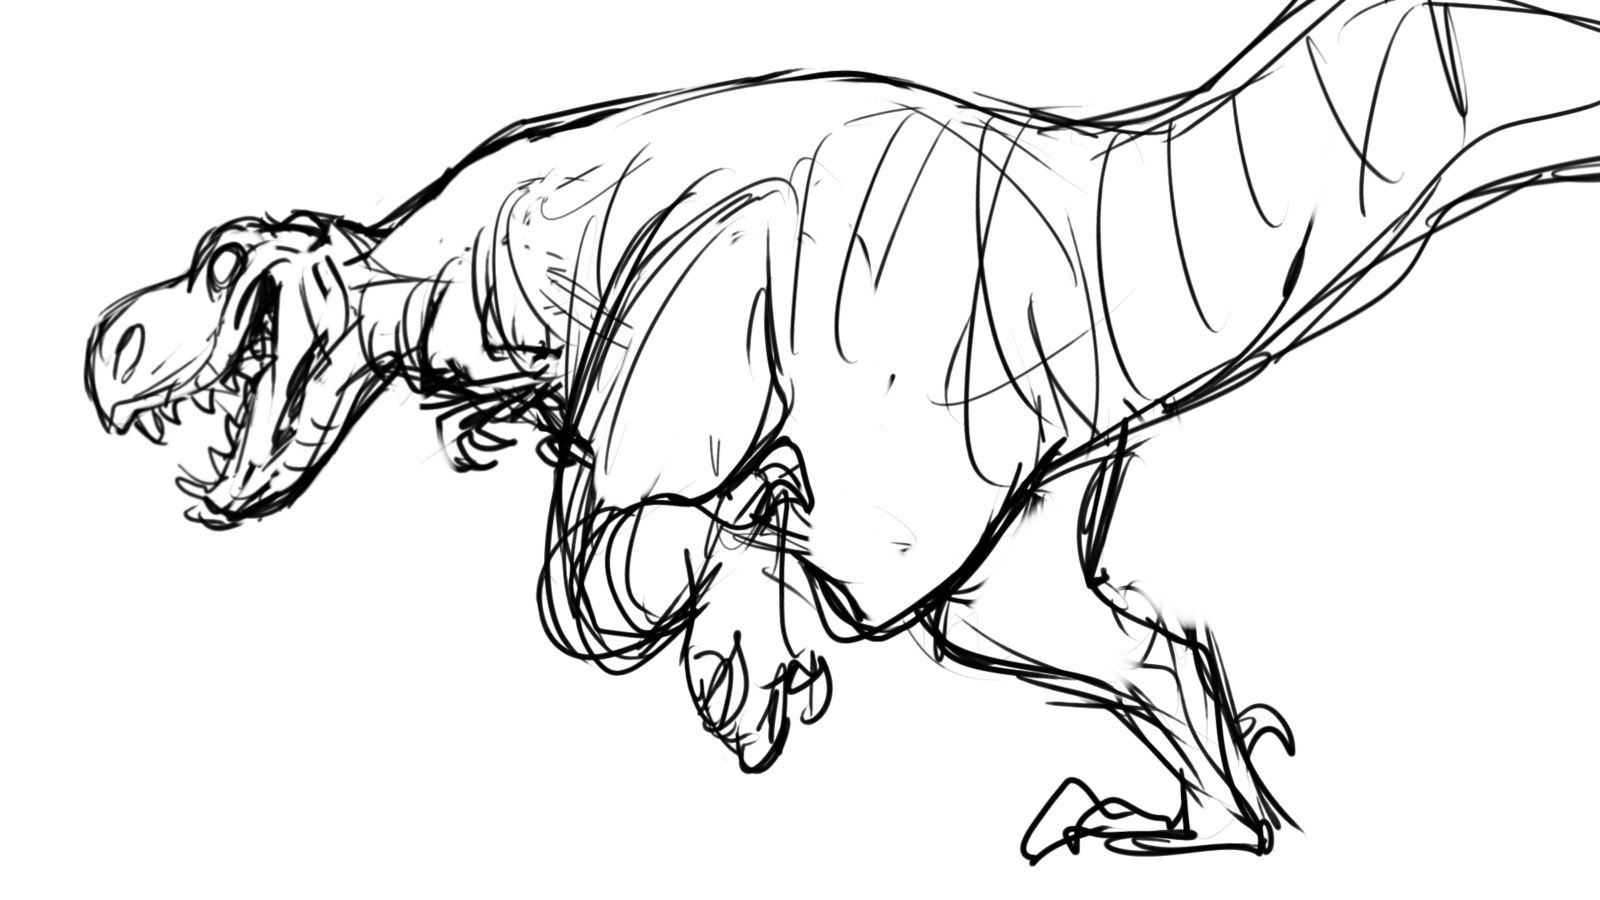 how to draw a t rex t rex drawing by alanpro777 on deviantart draw rex t how to a